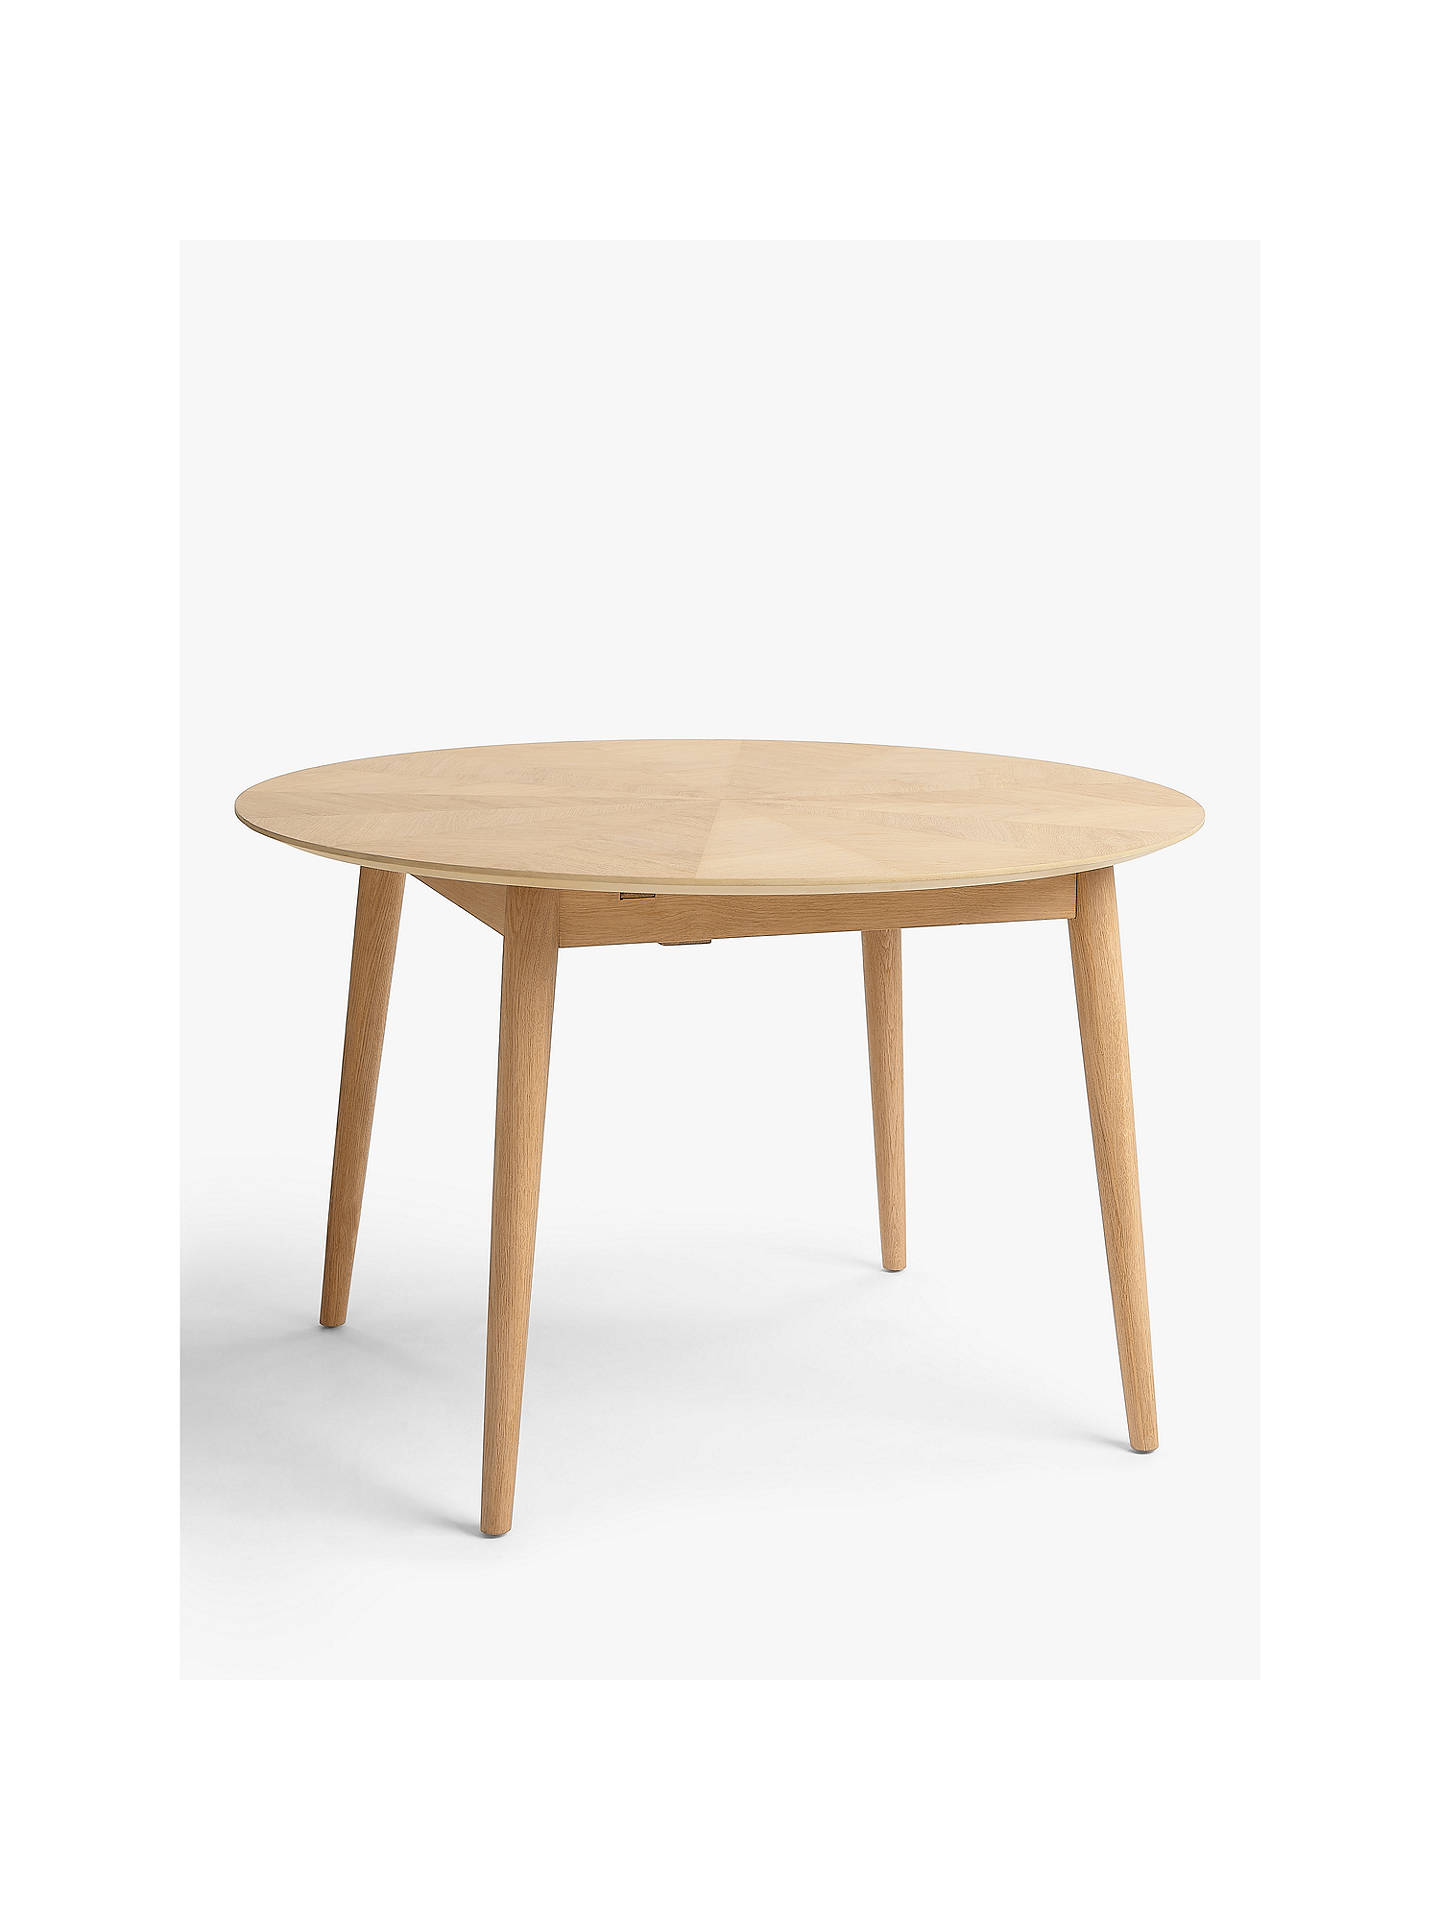 Croft Collection Iona 4 6 Seater Extending Round Dining Table At John Lewis Partners